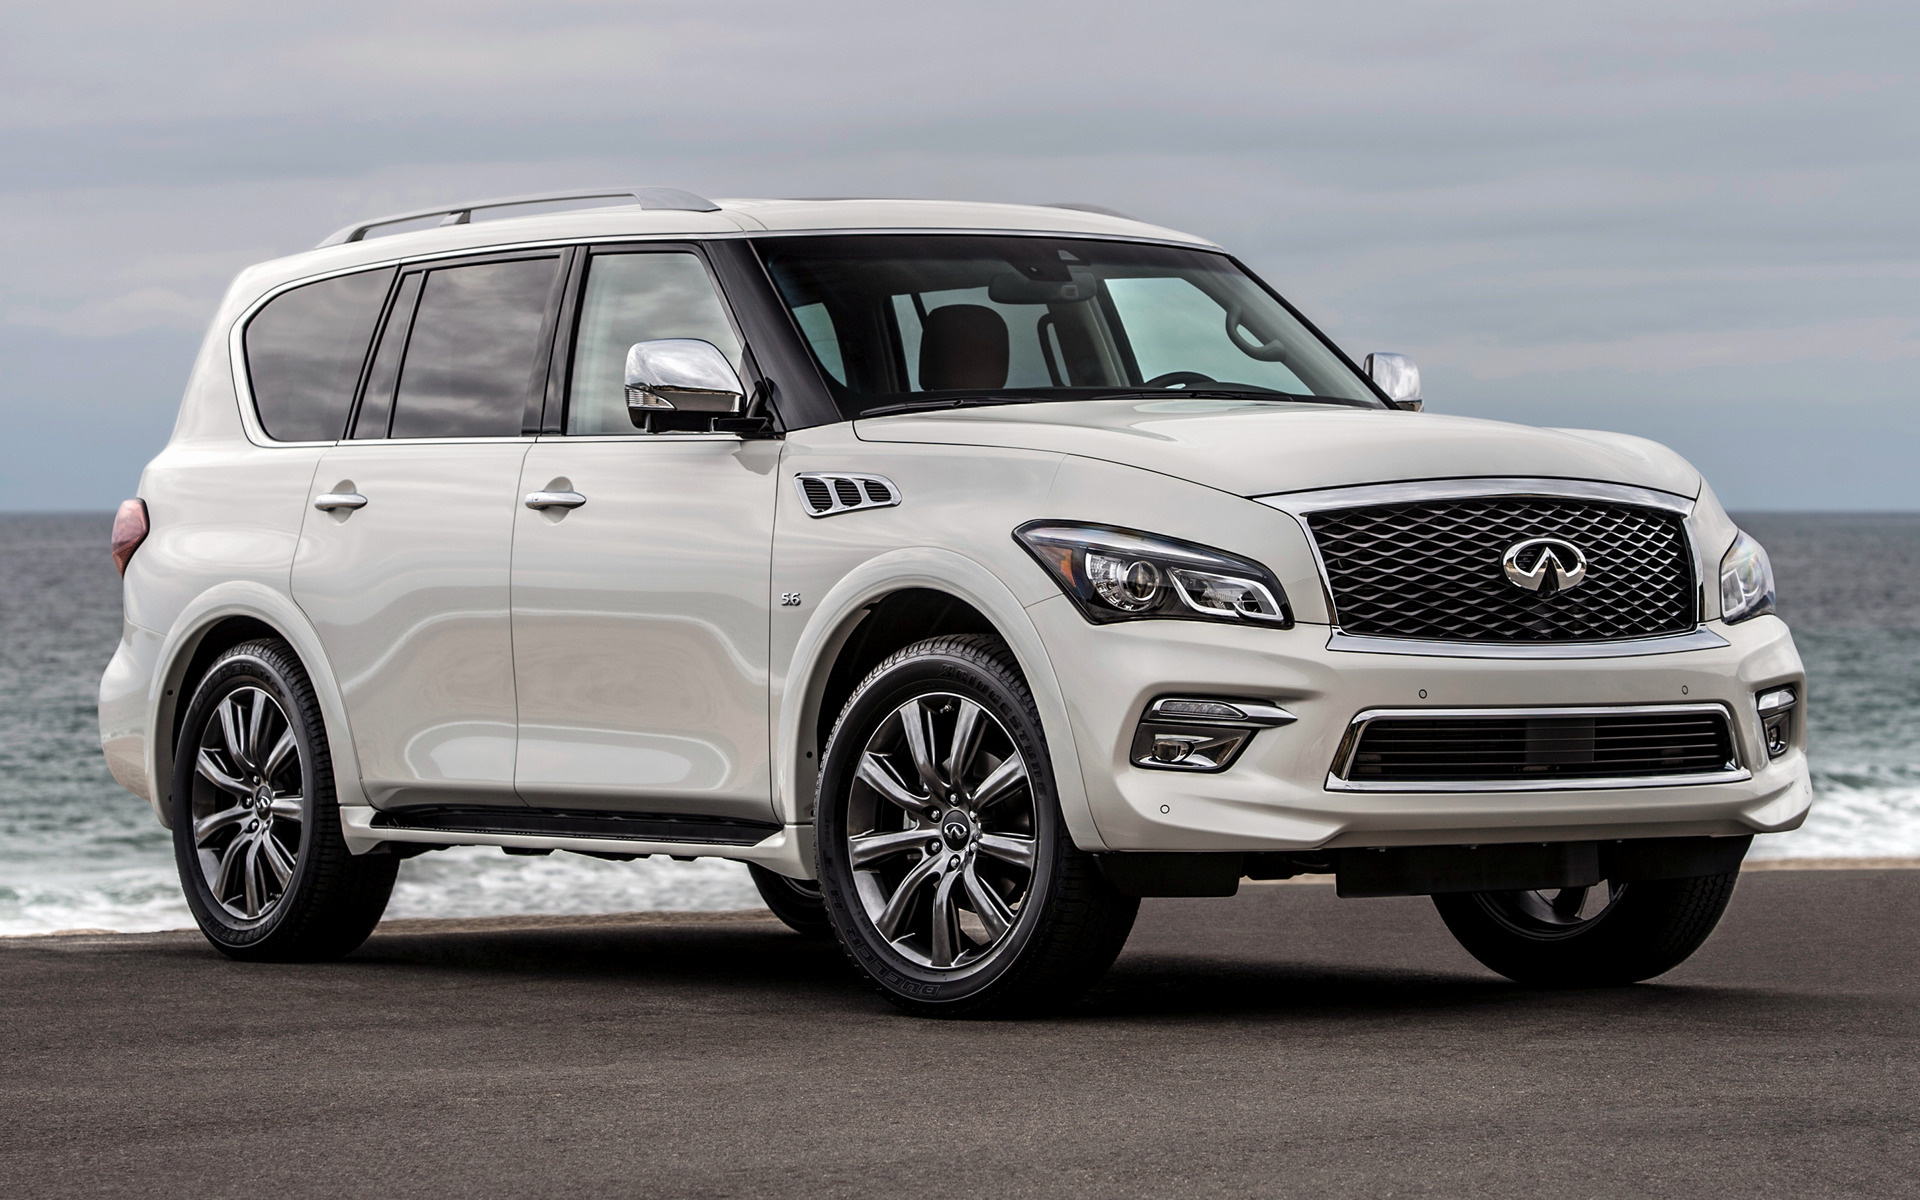 1920x1200 - Infiniti QX80 Wallpapers 11